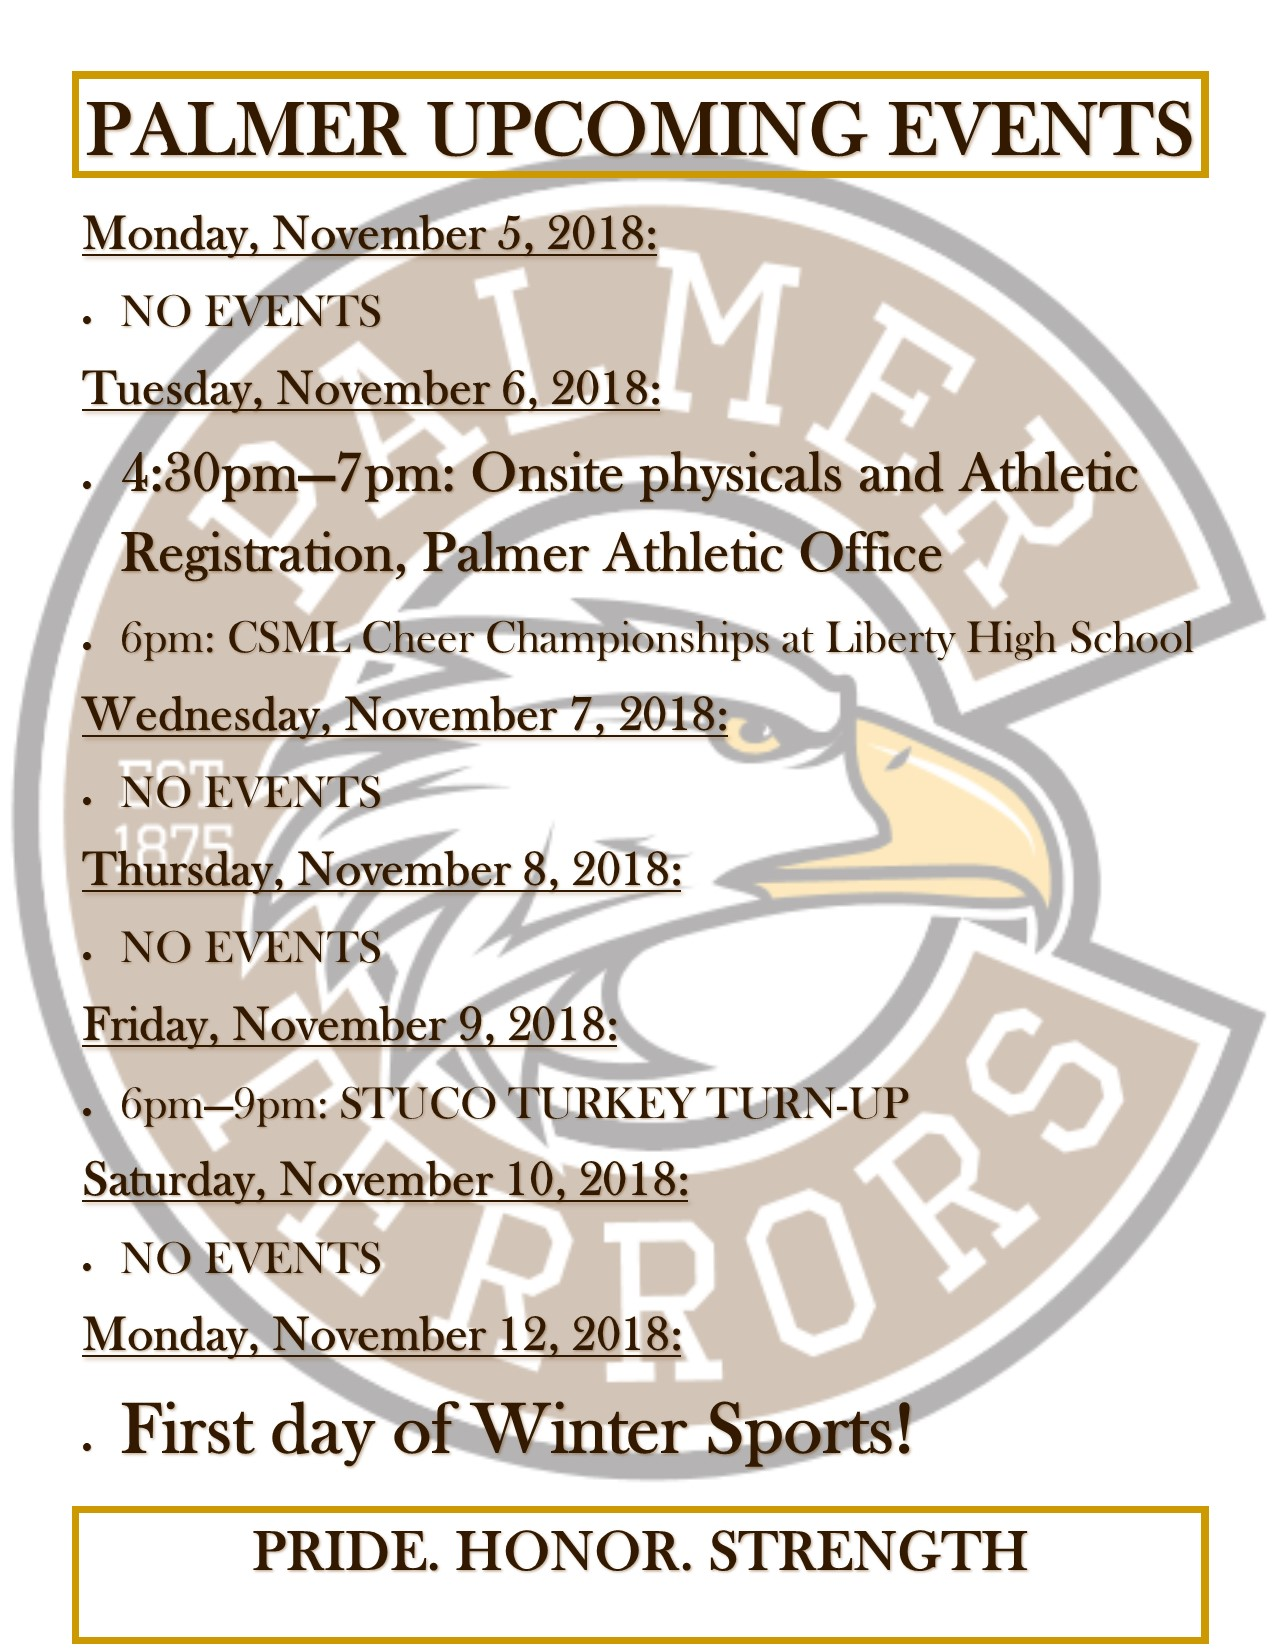 Winter Sports Registration and Week of Nov. 5 events